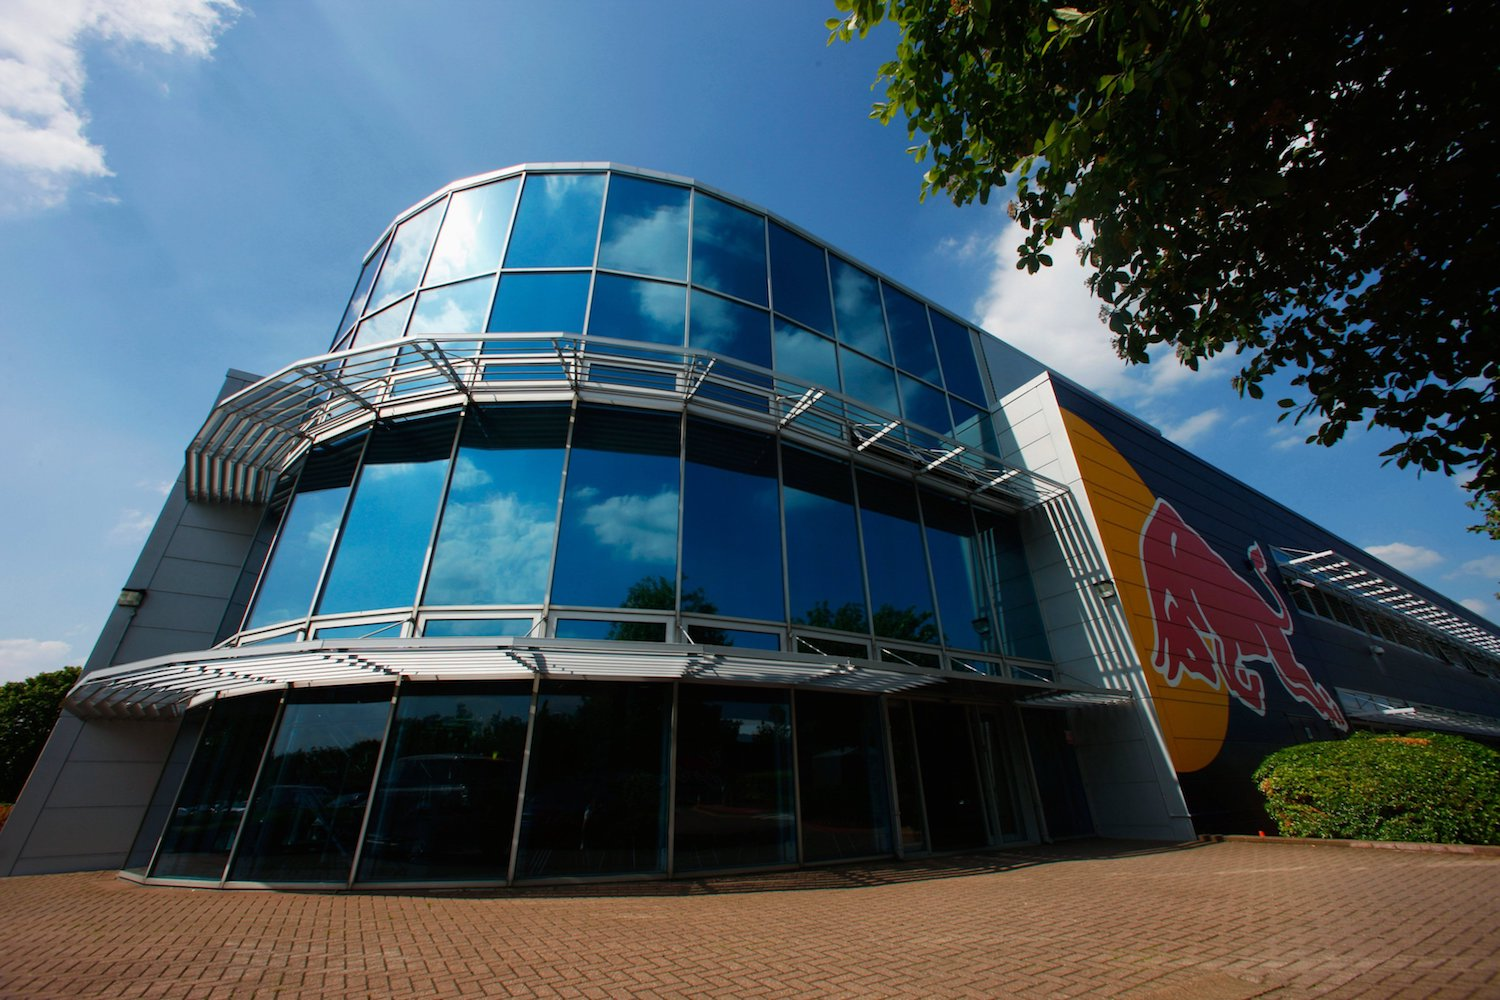 The Red Bull Racing simulator building at the team factory in Milton Keynes, England.